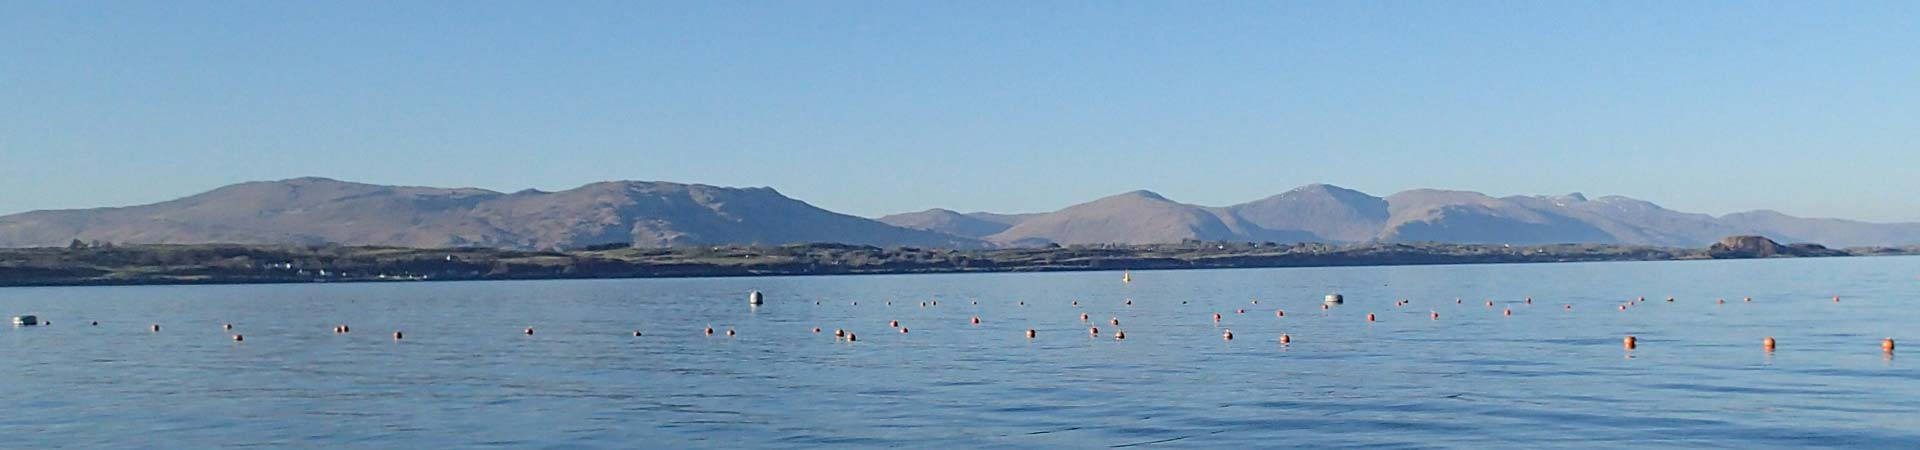 Picture of our seaweed farm - only a few buoys visible from the surface